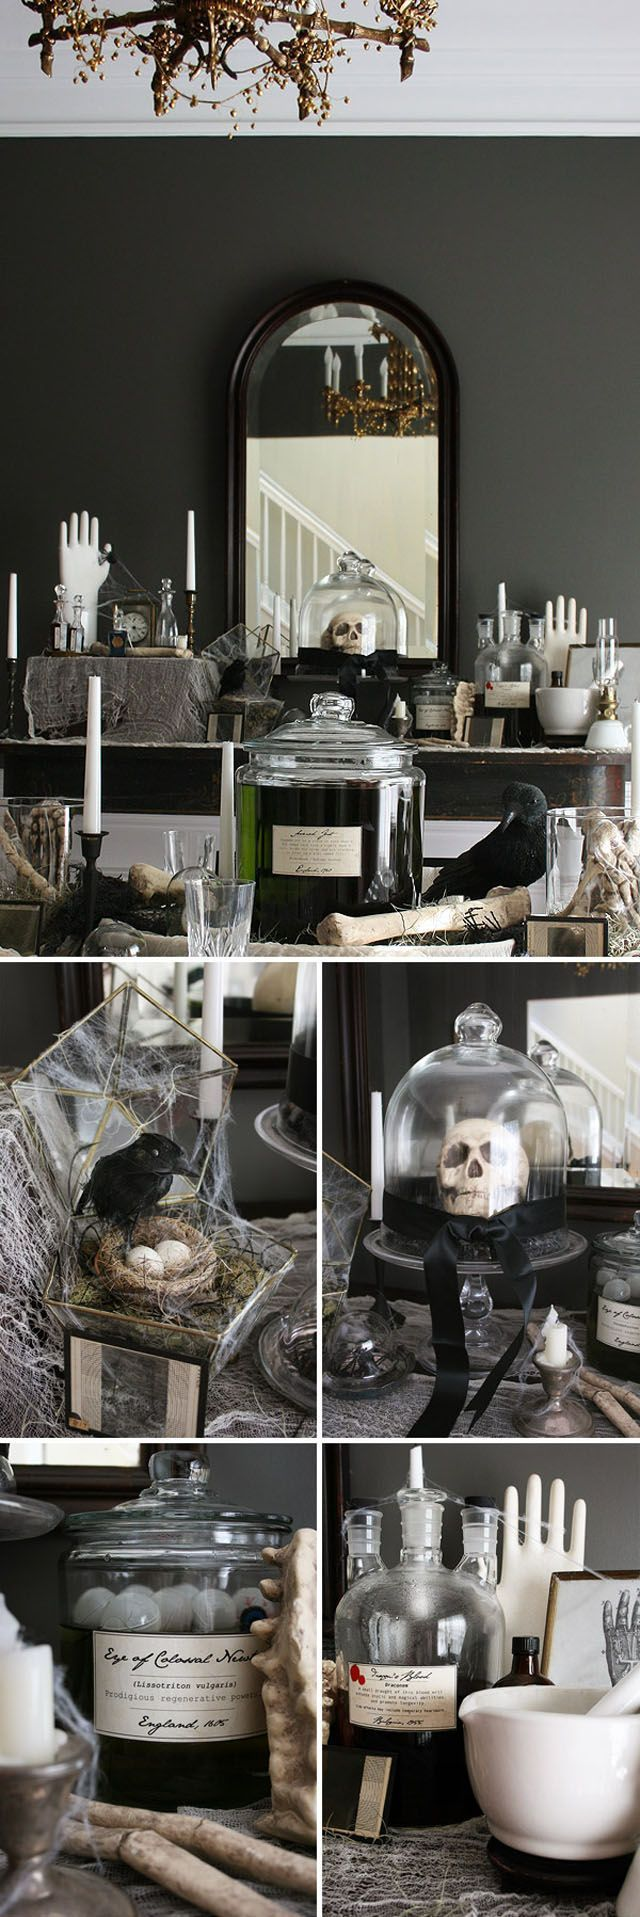 im always drawn to black and aged white halloween decor classy and sinister - Black And White Halloween Decorations